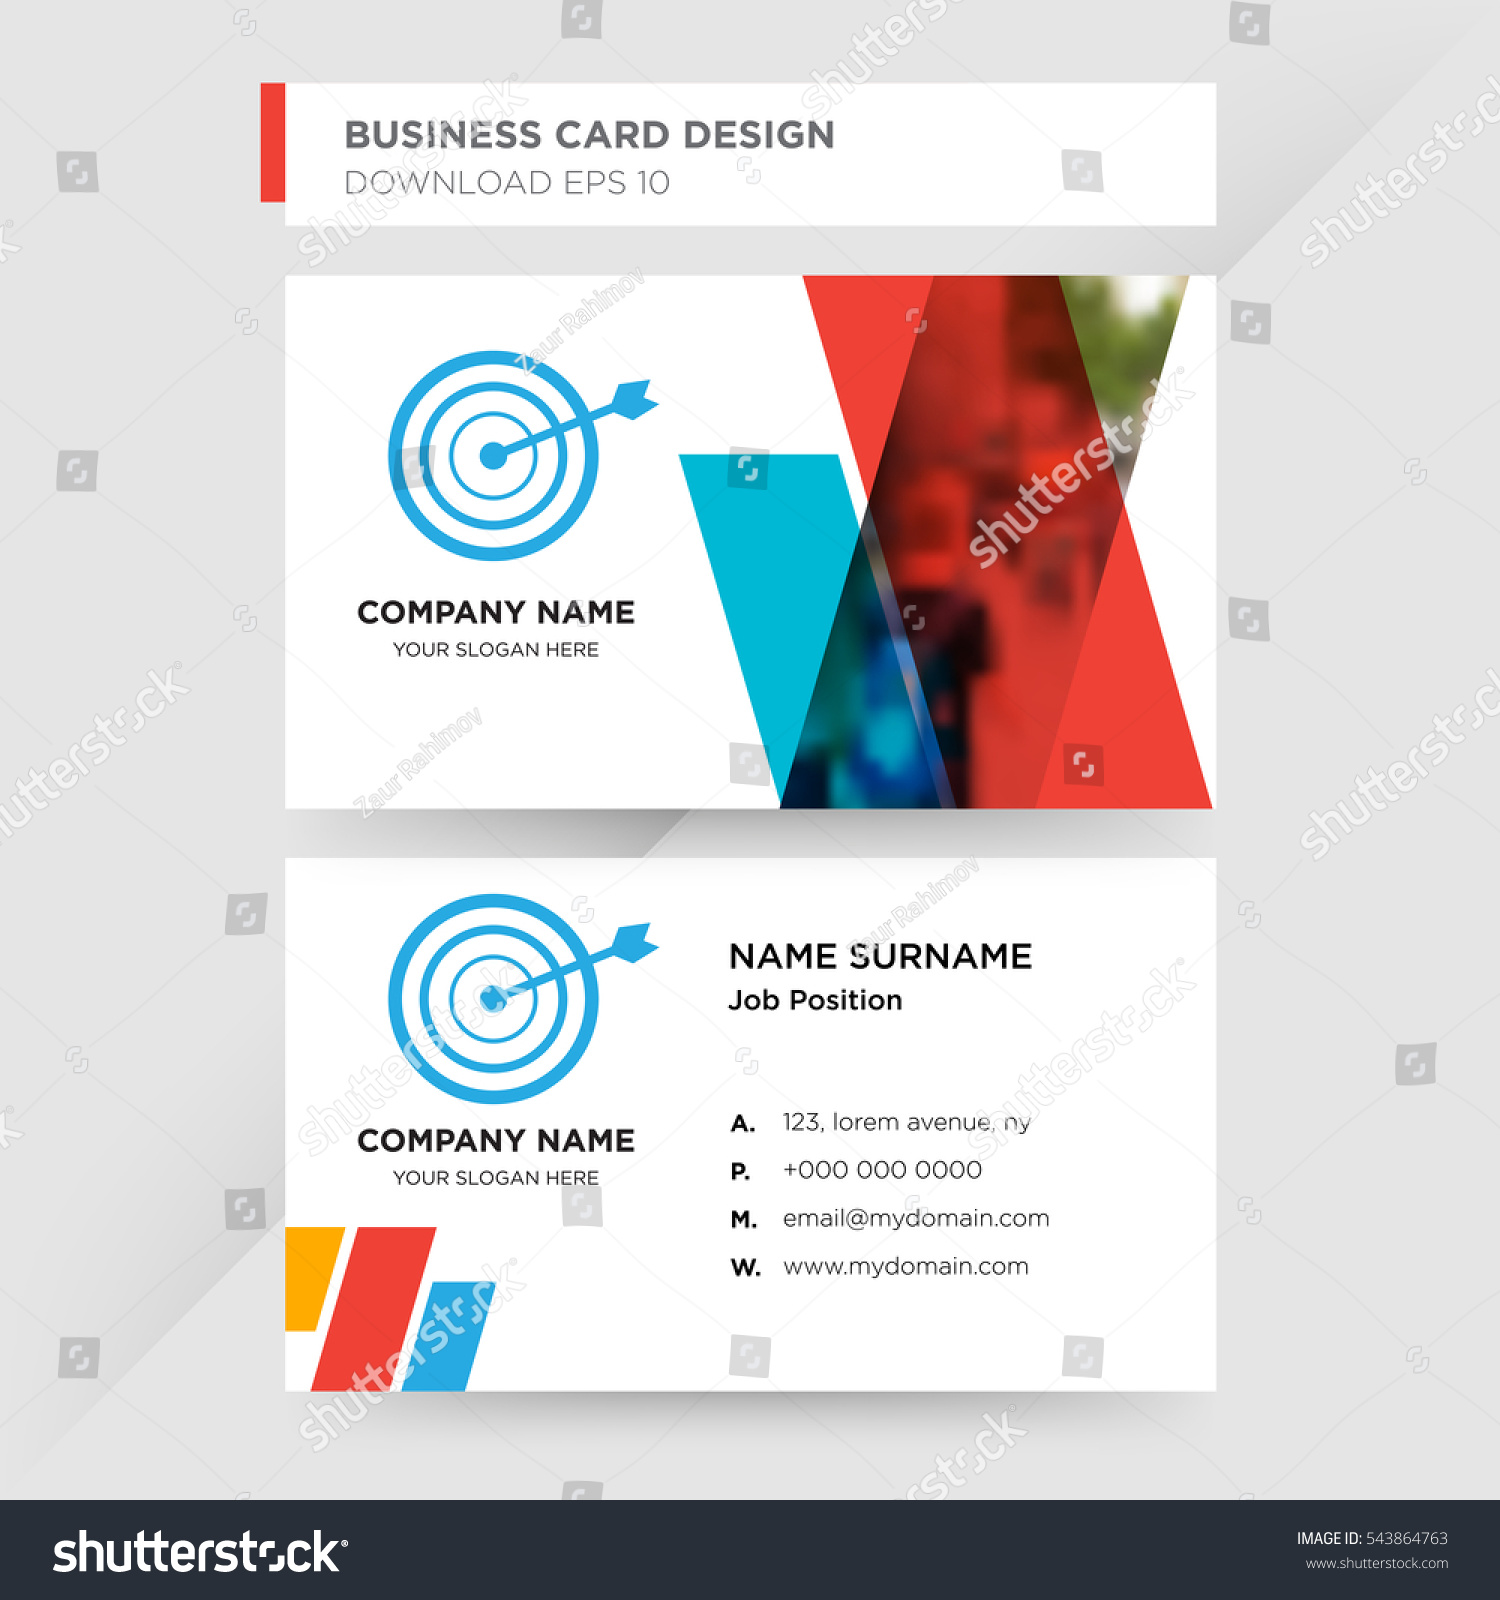 Template business card consulting services company stock vector template of business card for consulting services company with blue darts vector on gray background magicingreecefo Choice Image